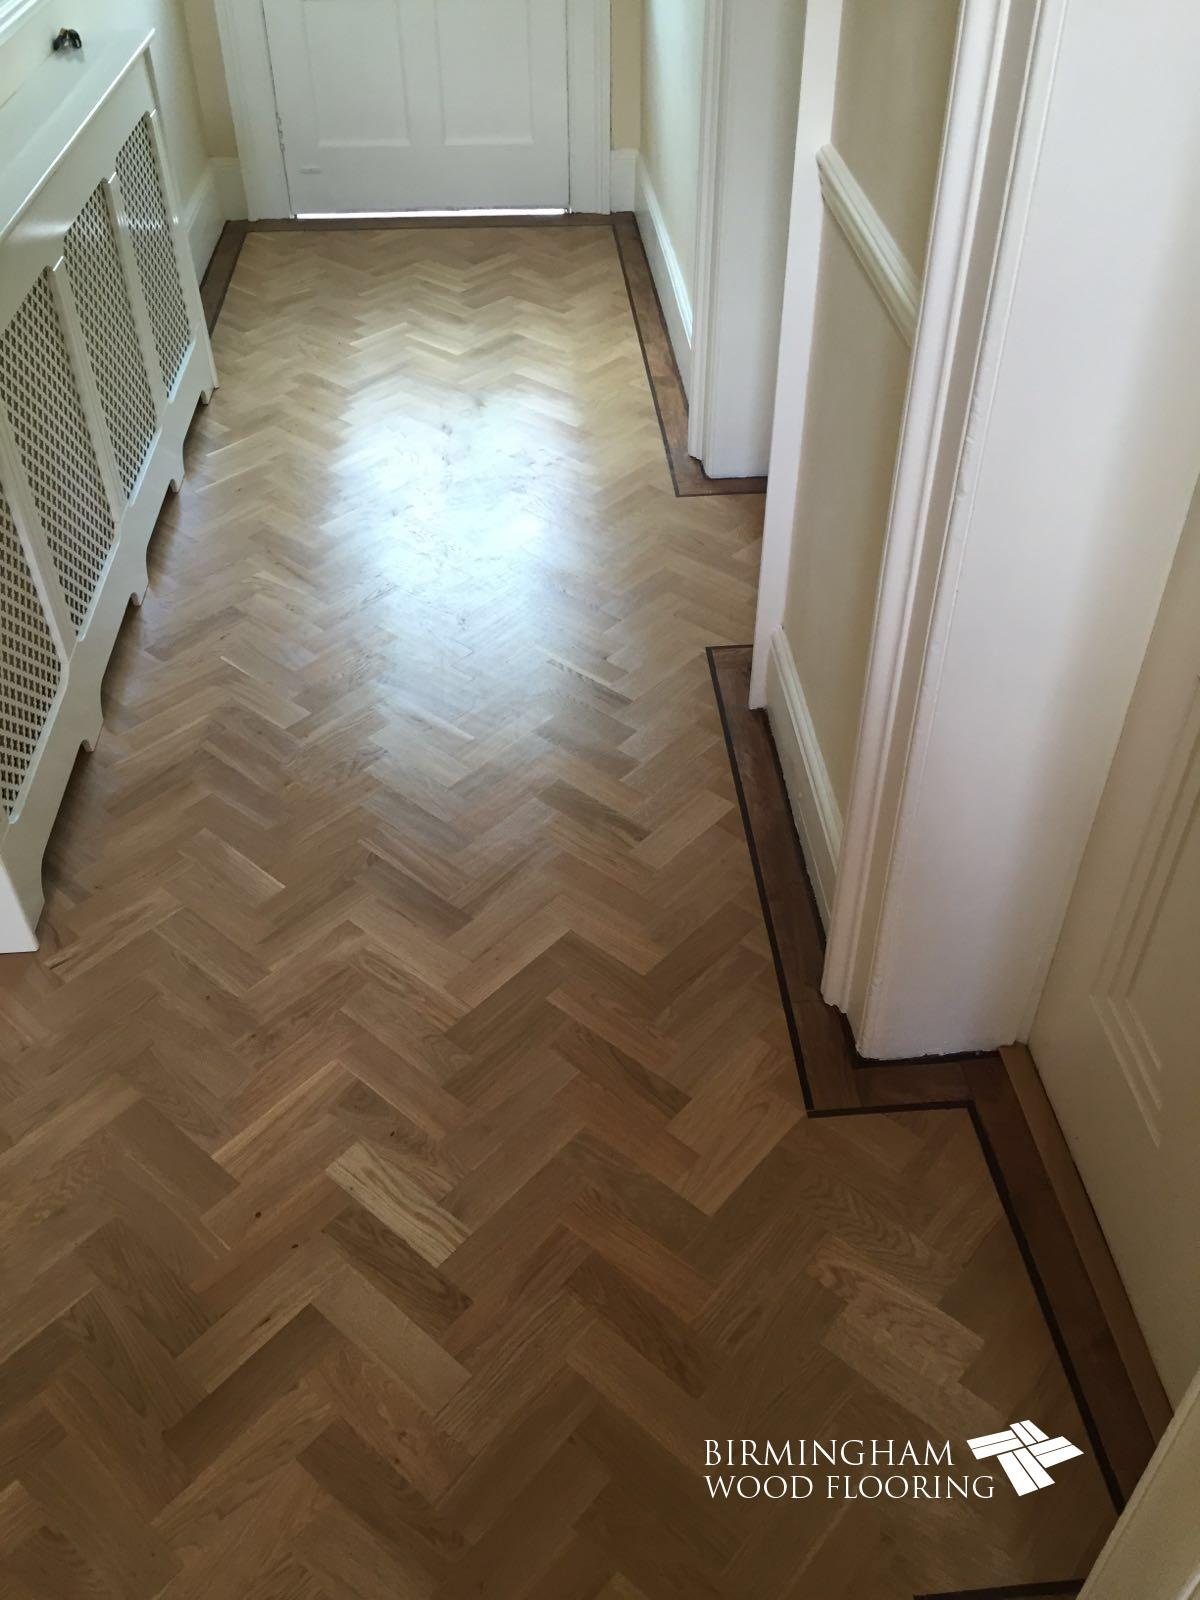 Parquet-floor-with-Wenge-Feature-strip-installed-with-order-stained-medium-oak-2